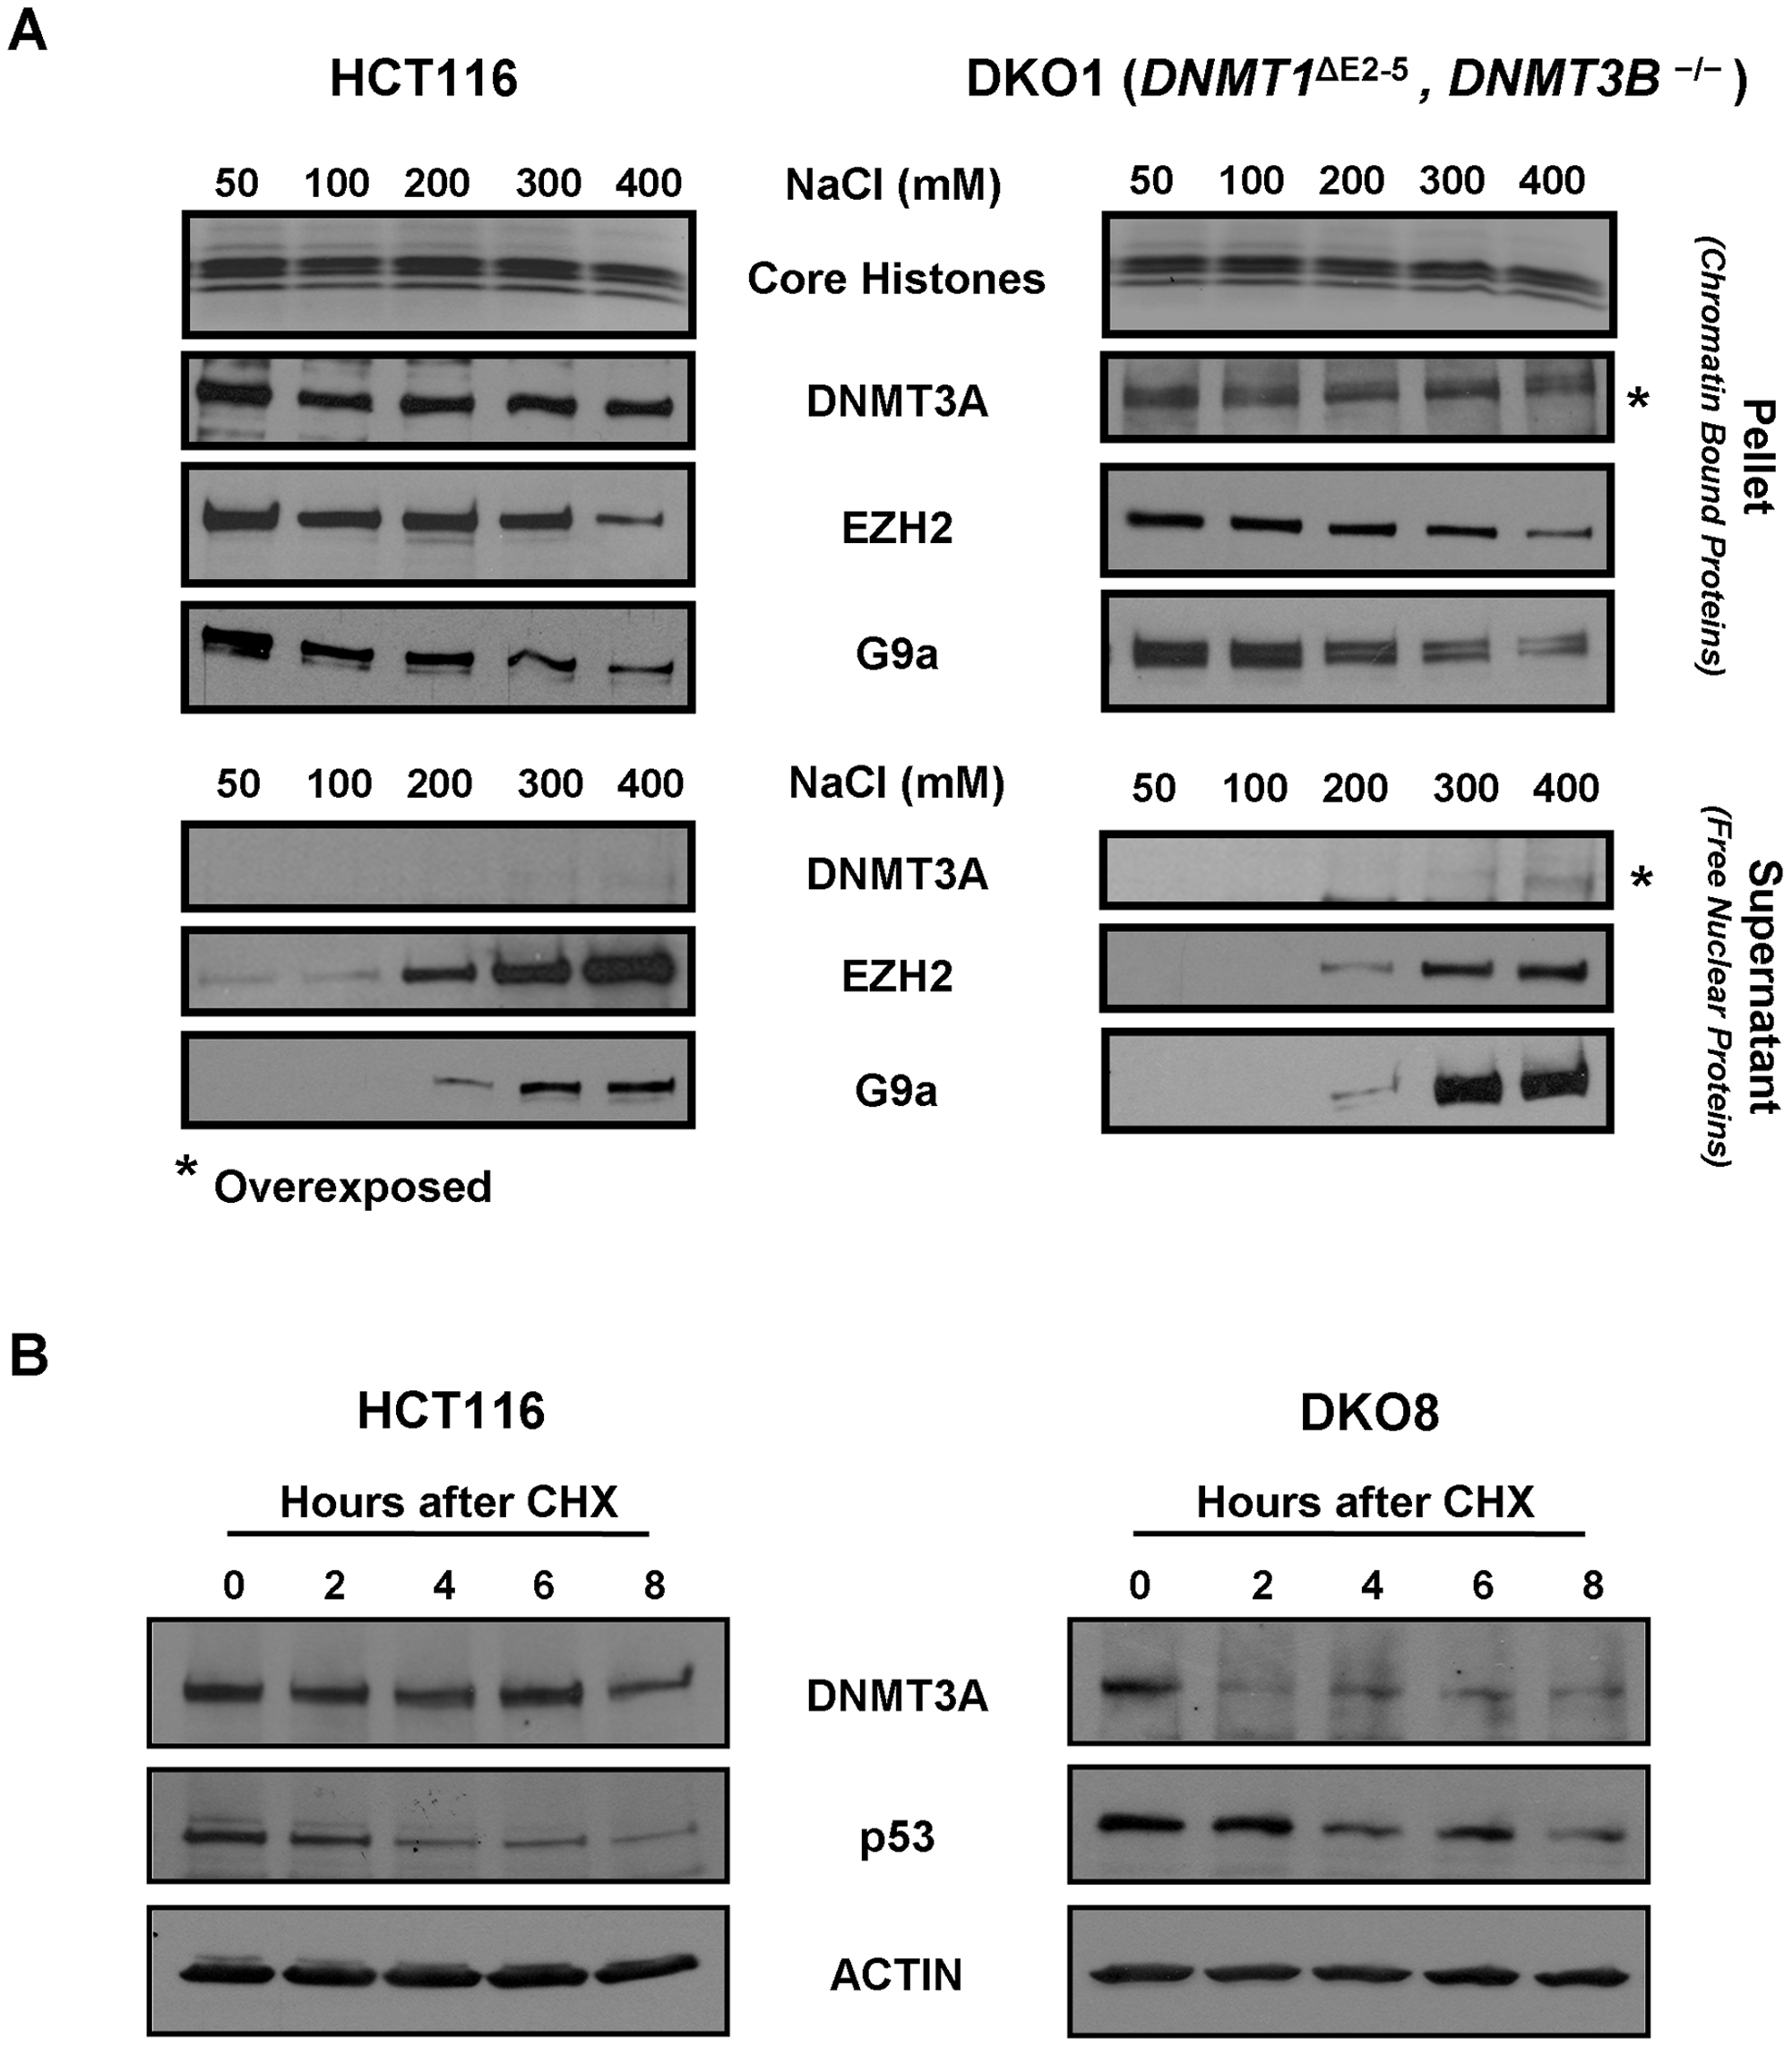 DNMT3A chromatin binding affinity and protein stability in WT HCT116 and DKO cells.